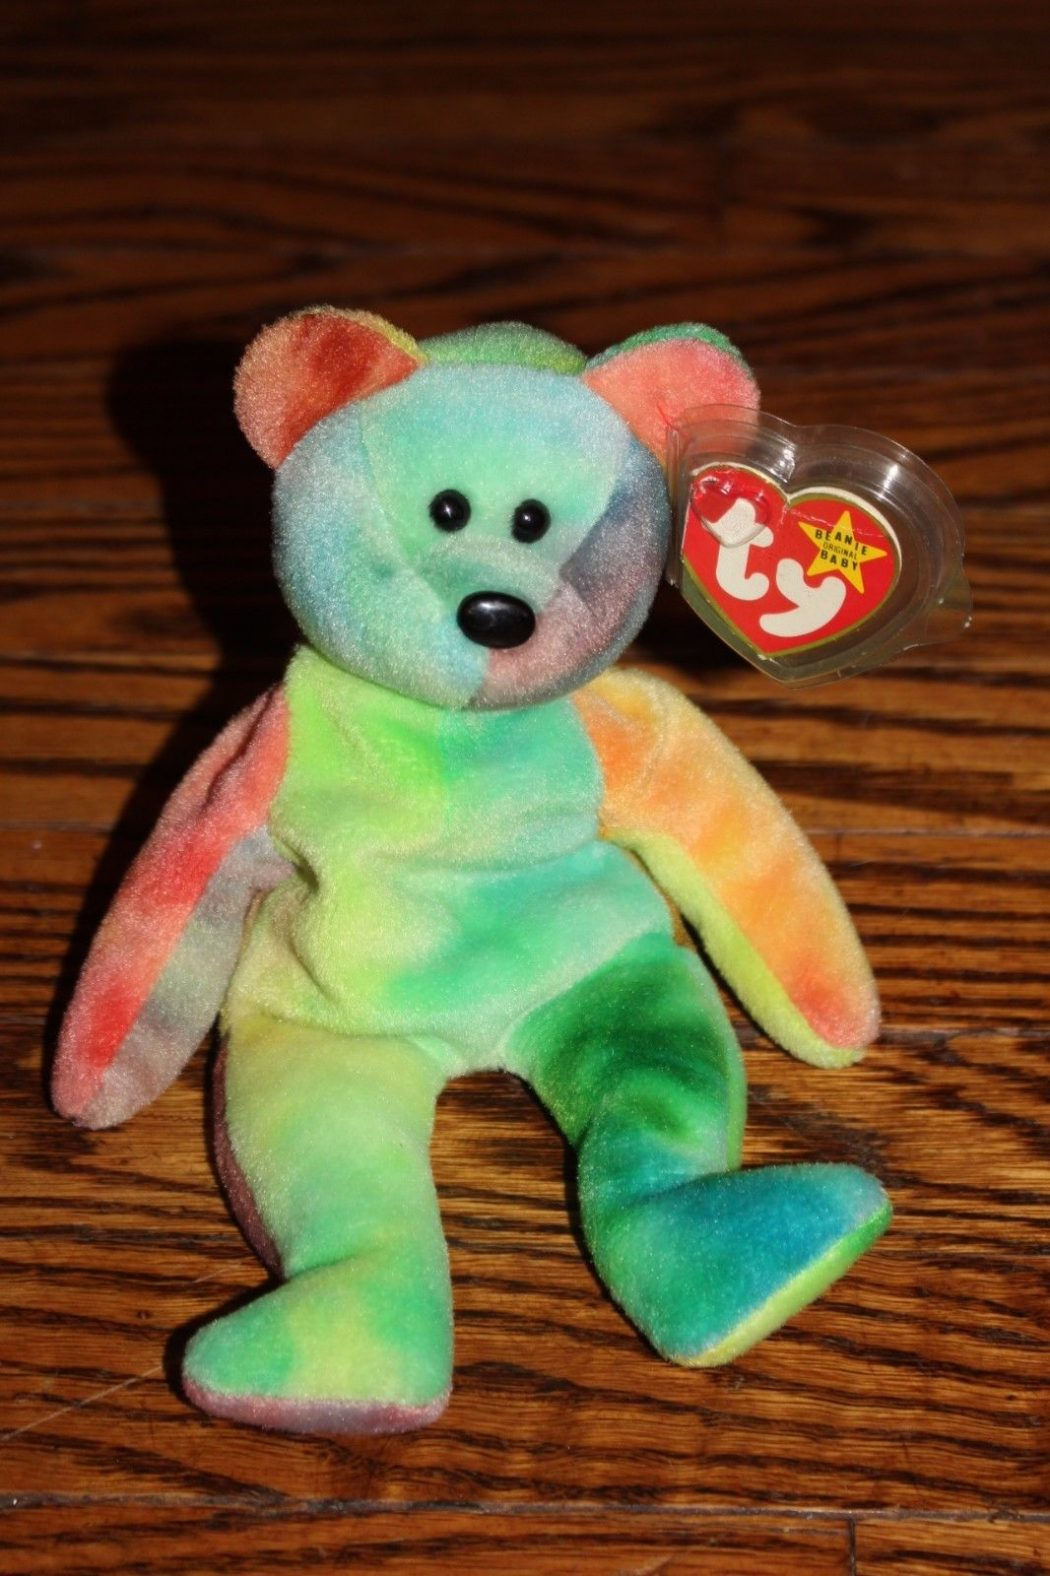 garcia-beanie-baby-misprint-tag-4th-generation-pvc-pellets-ty-error-babies-1993-6899d4b1dc011815cdff2ef2ae21d5cc 5 Most Wanted Halloween Beanie Babies Costumes & What To Consider